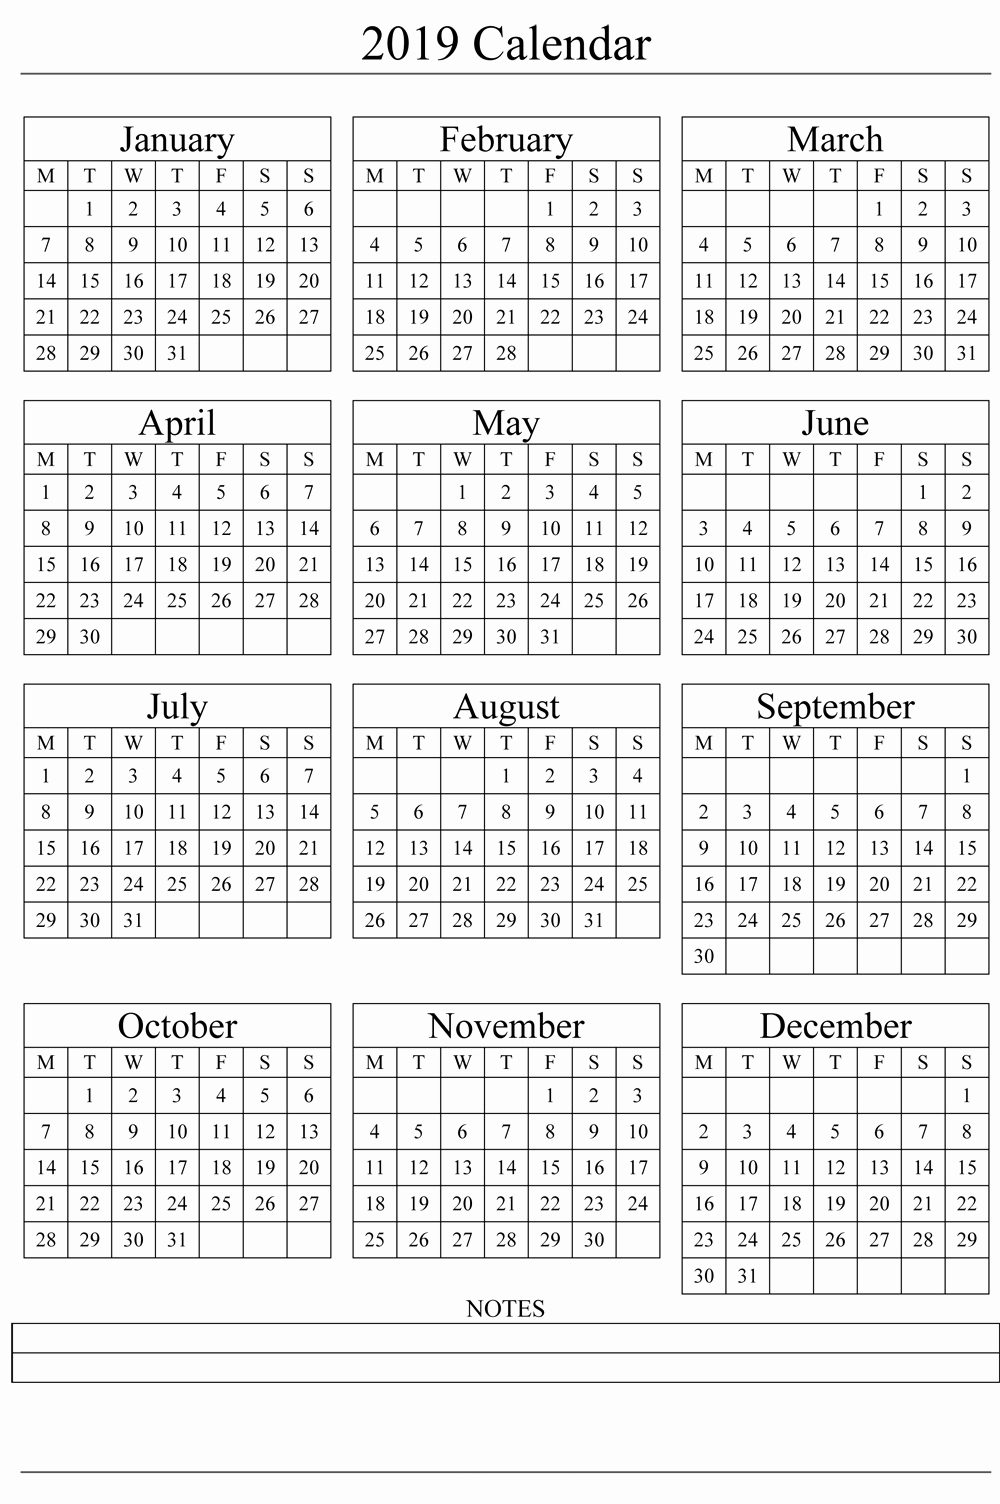 Free Printable 5 Day Monthly Calendar 2019 May 2019 Calendar With for 5 Day Monthly Calendar Printable